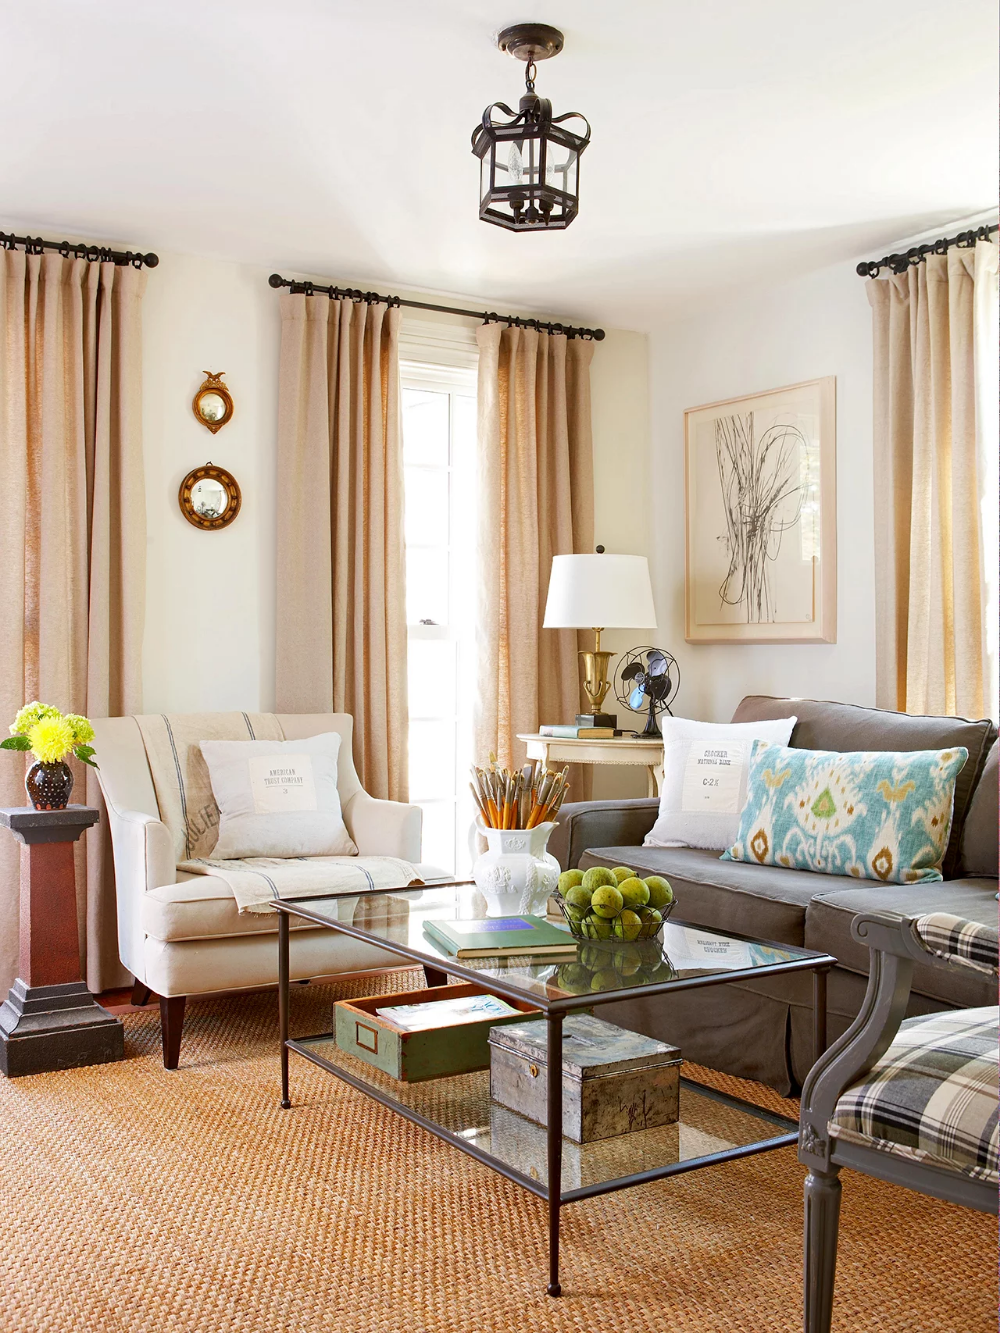 NoFail Tricks for Arranging Furniture Family room